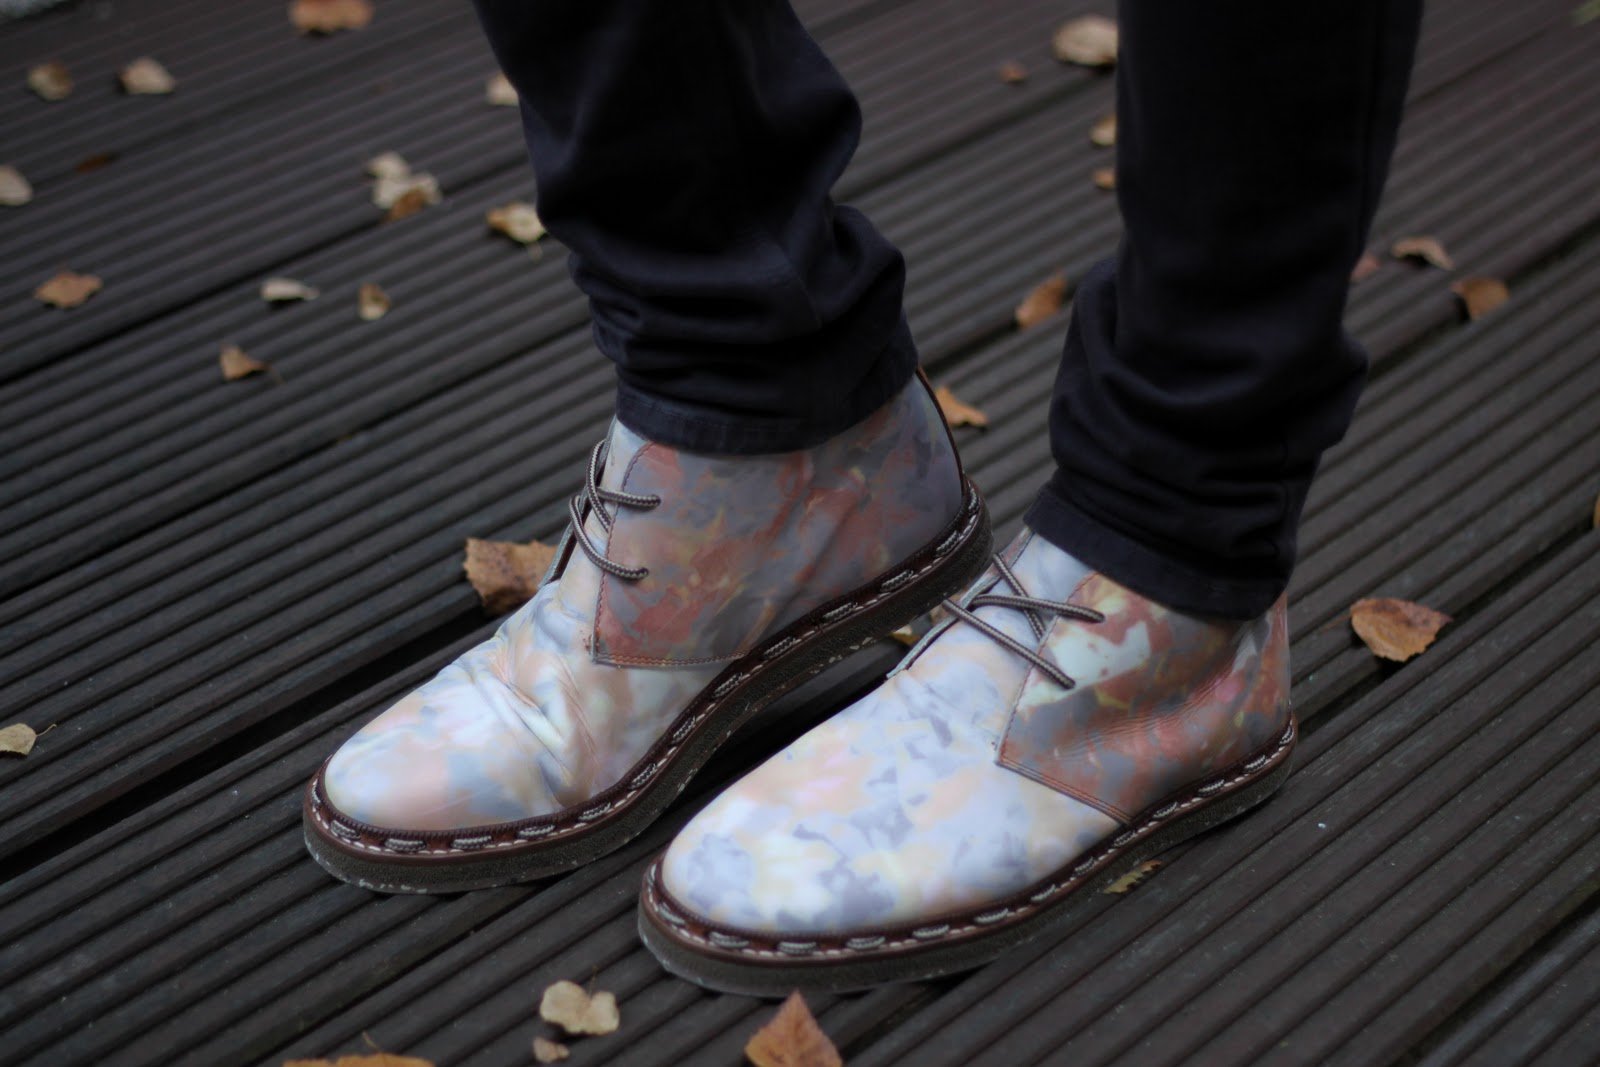 Steve Salter, SIX London and Farfetch collaboration shoes with autumn leaf print